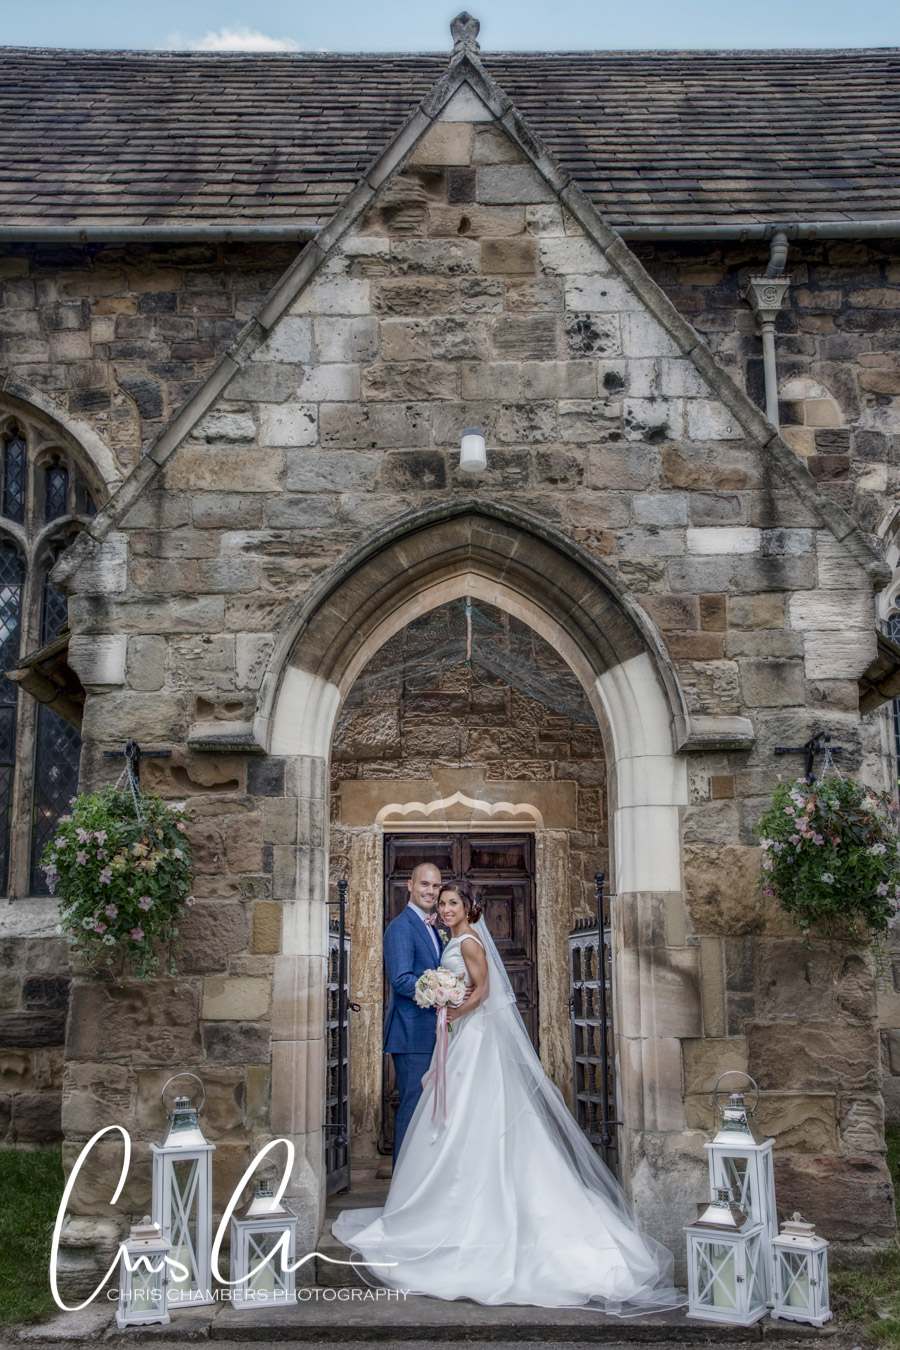 Pontefract and west yorkshire wedding photography, Wedding photographer wakefield